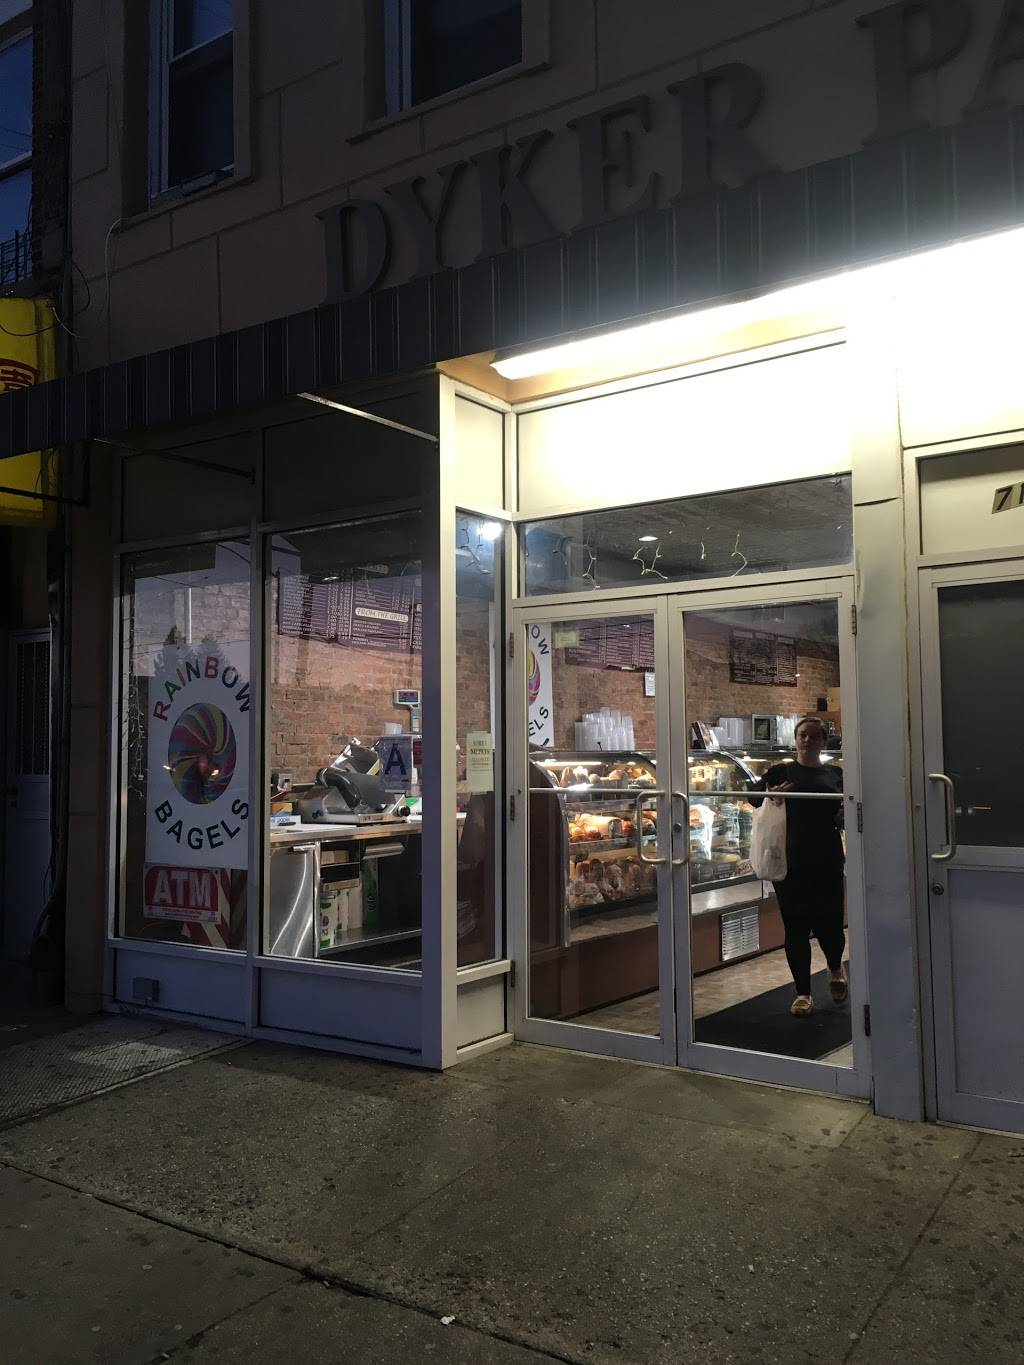 Dyker Park Bagels | cafe | 713 86th St, Brooklyn, NY 11228, USA | 7188366336 OR +1 718-836-6336